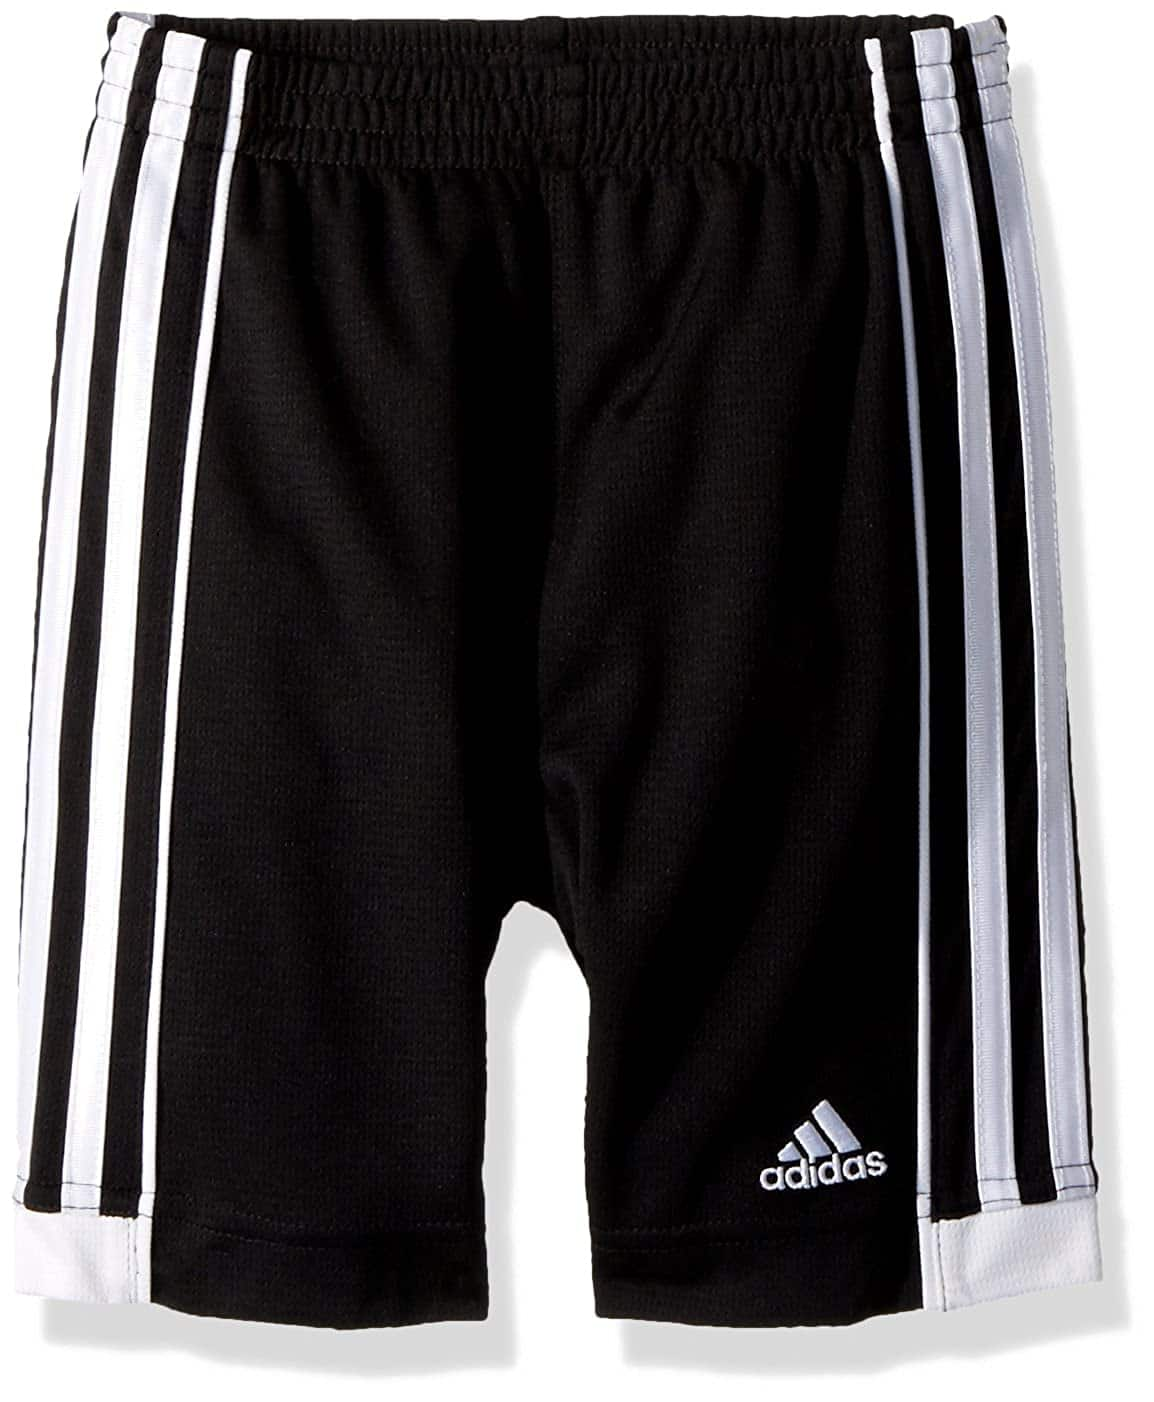 adidas Boys' Active Sports Athletic Shorts - Speed 18 Black colour $13.5